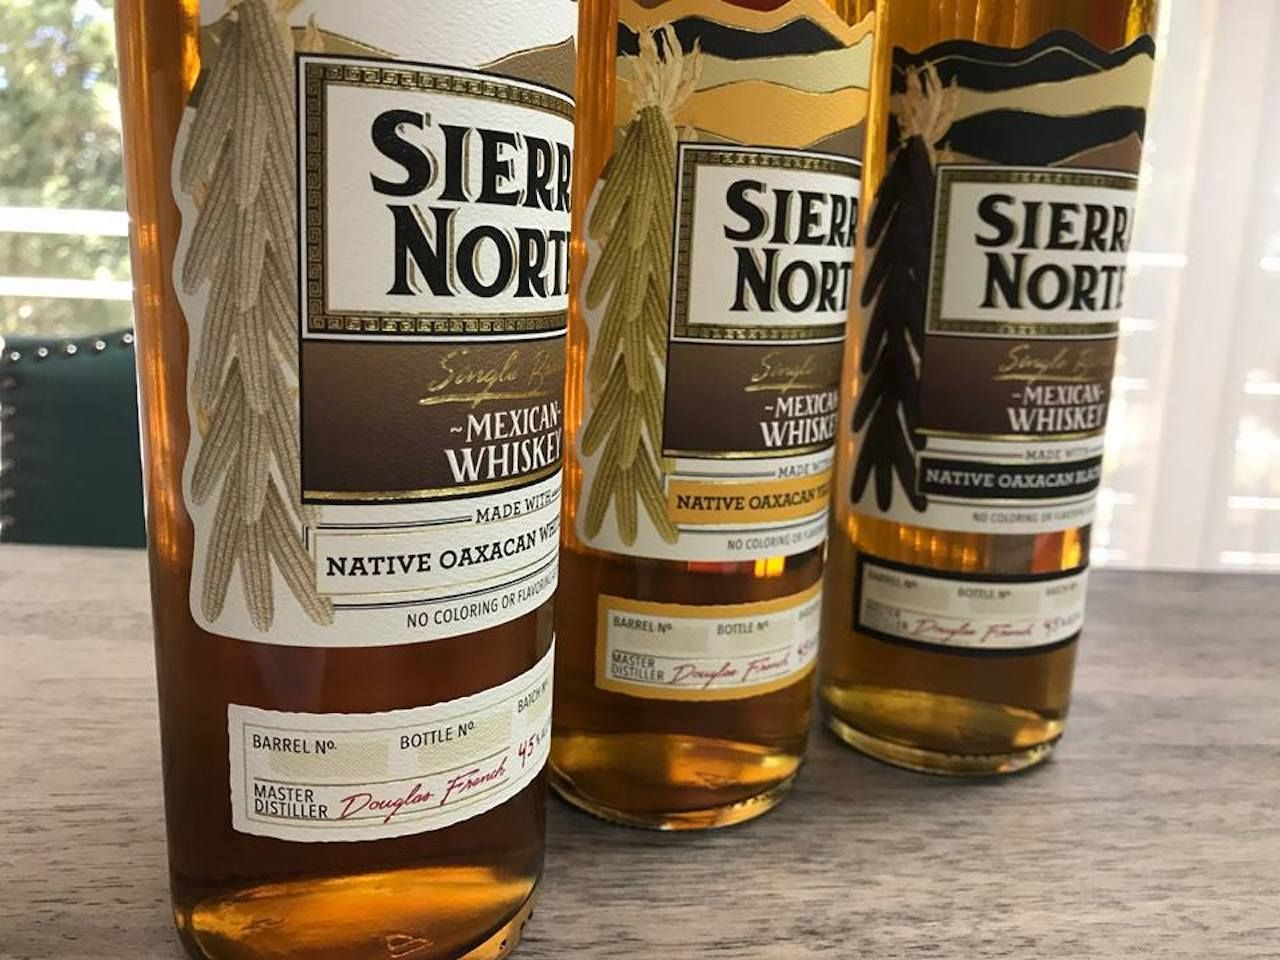 Sierra Norte Whiskey